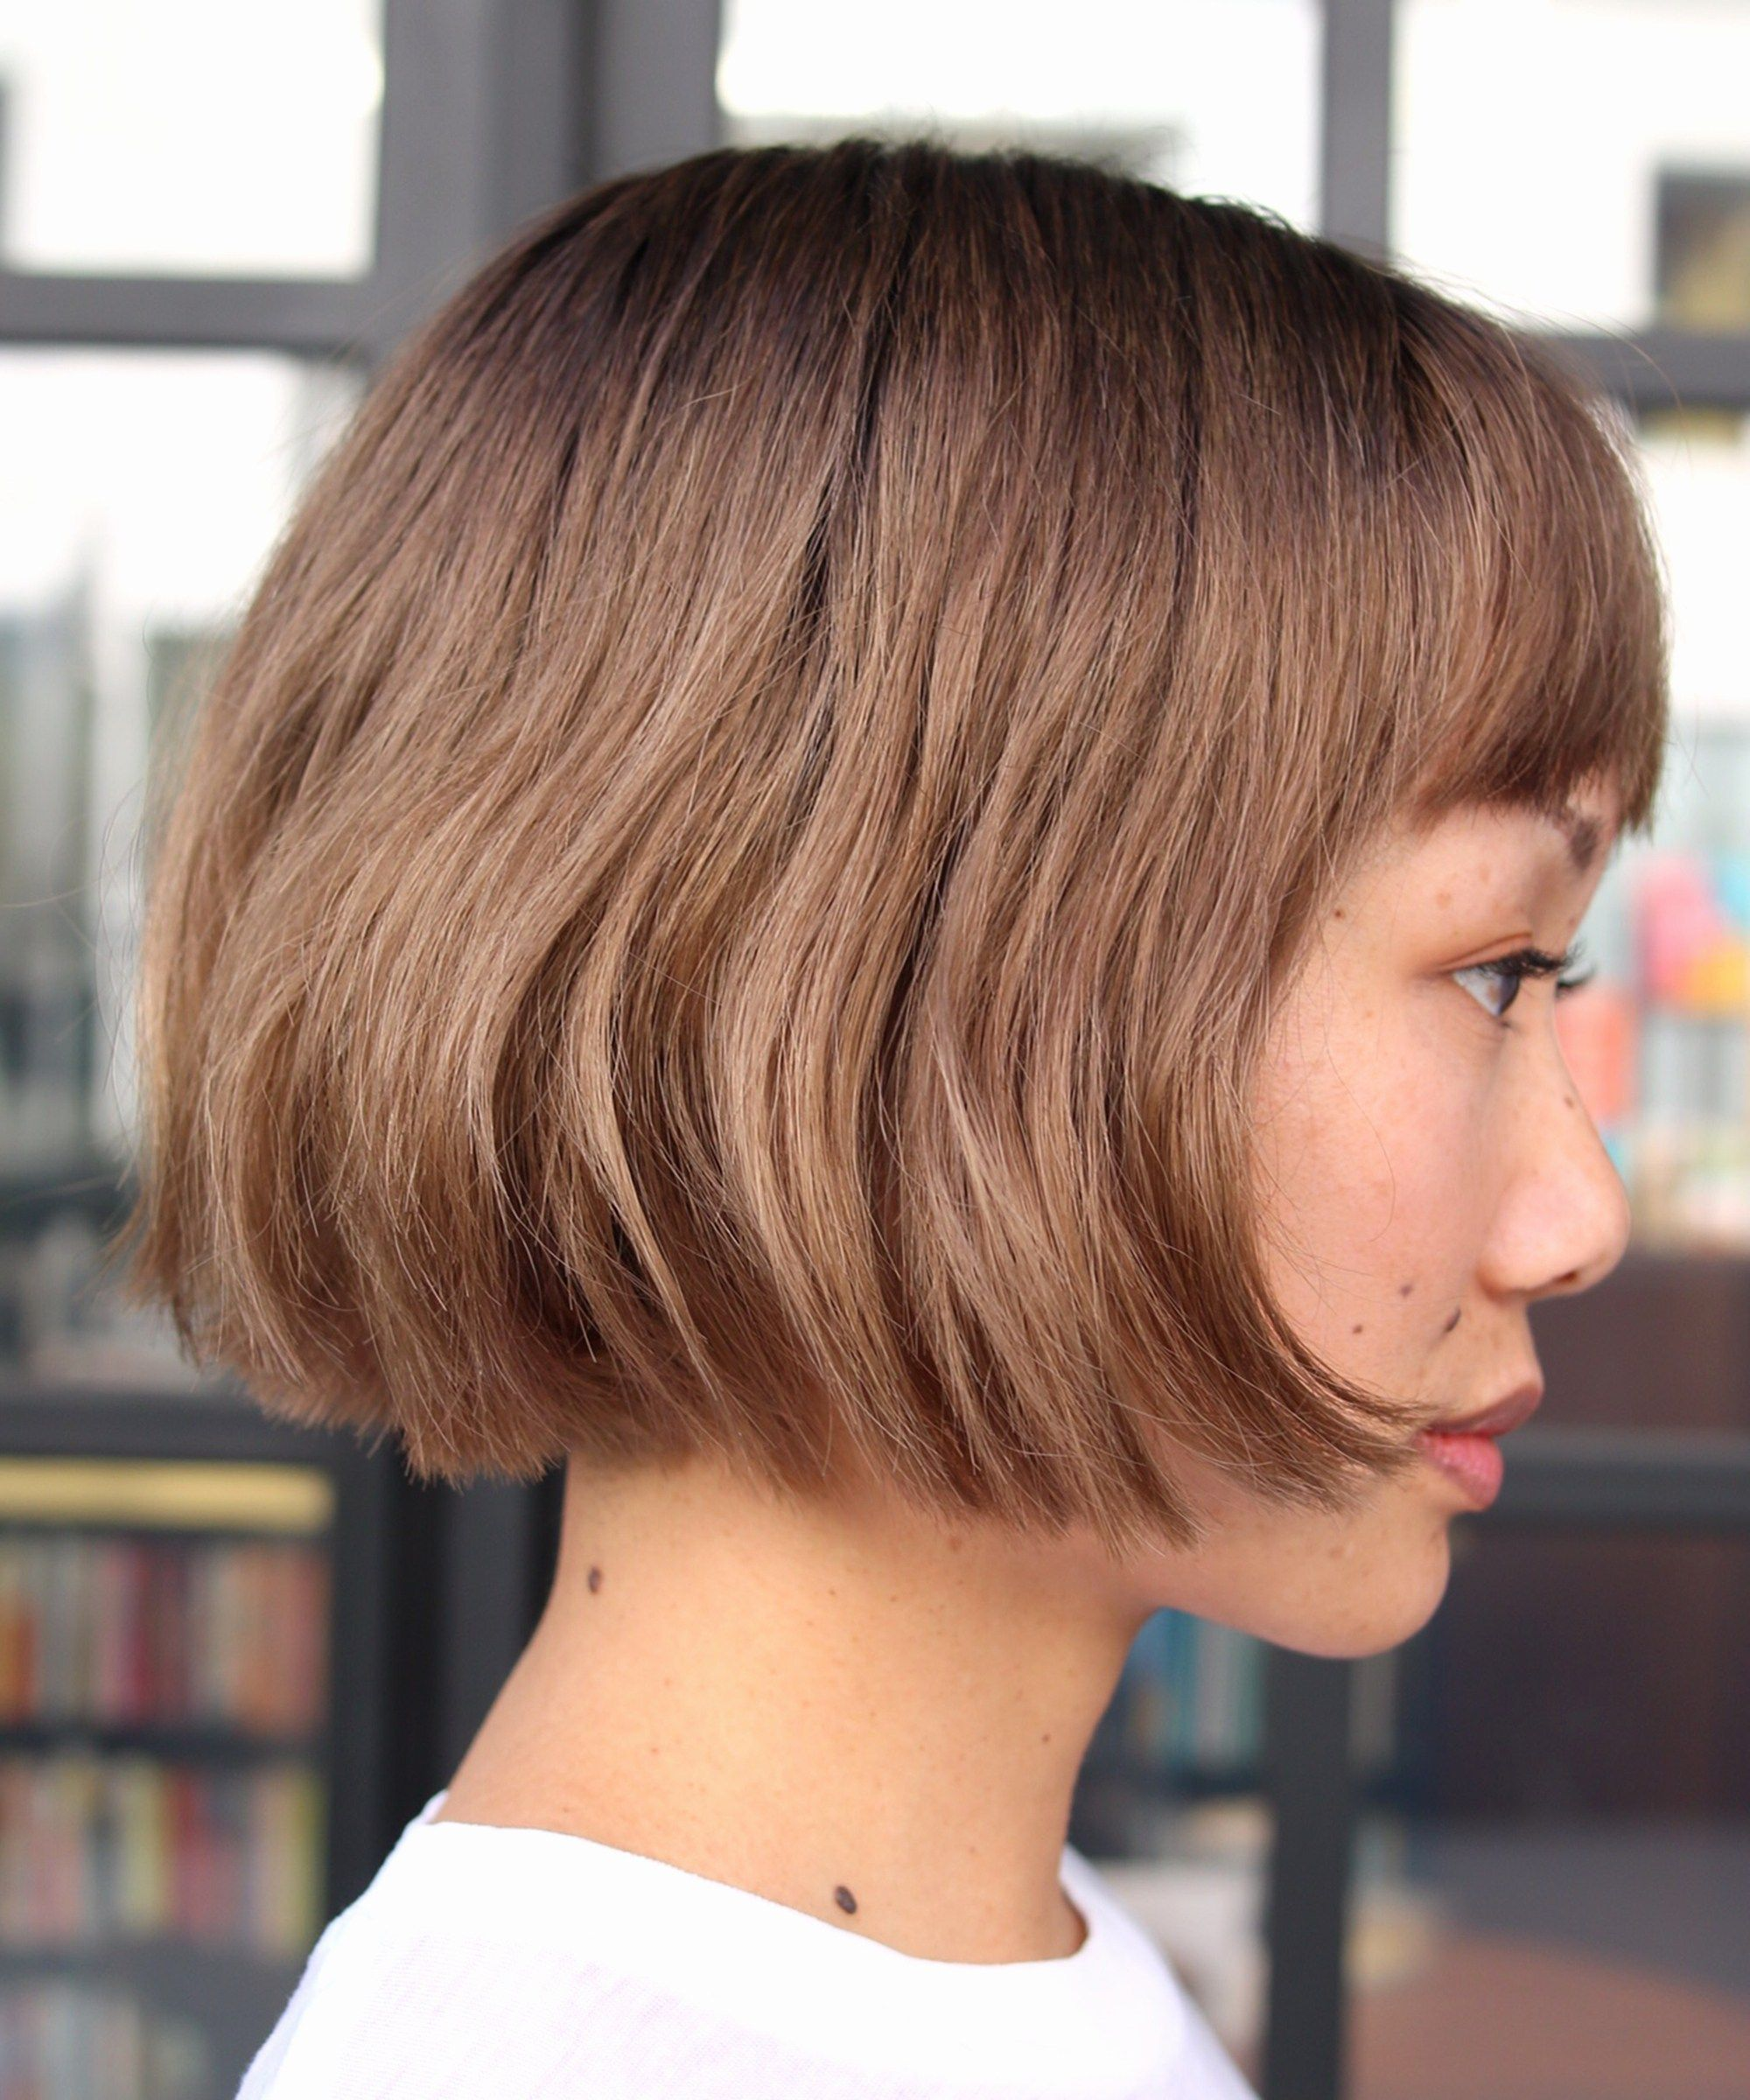 10 different bob hairstyles gone wrong look cool | capo